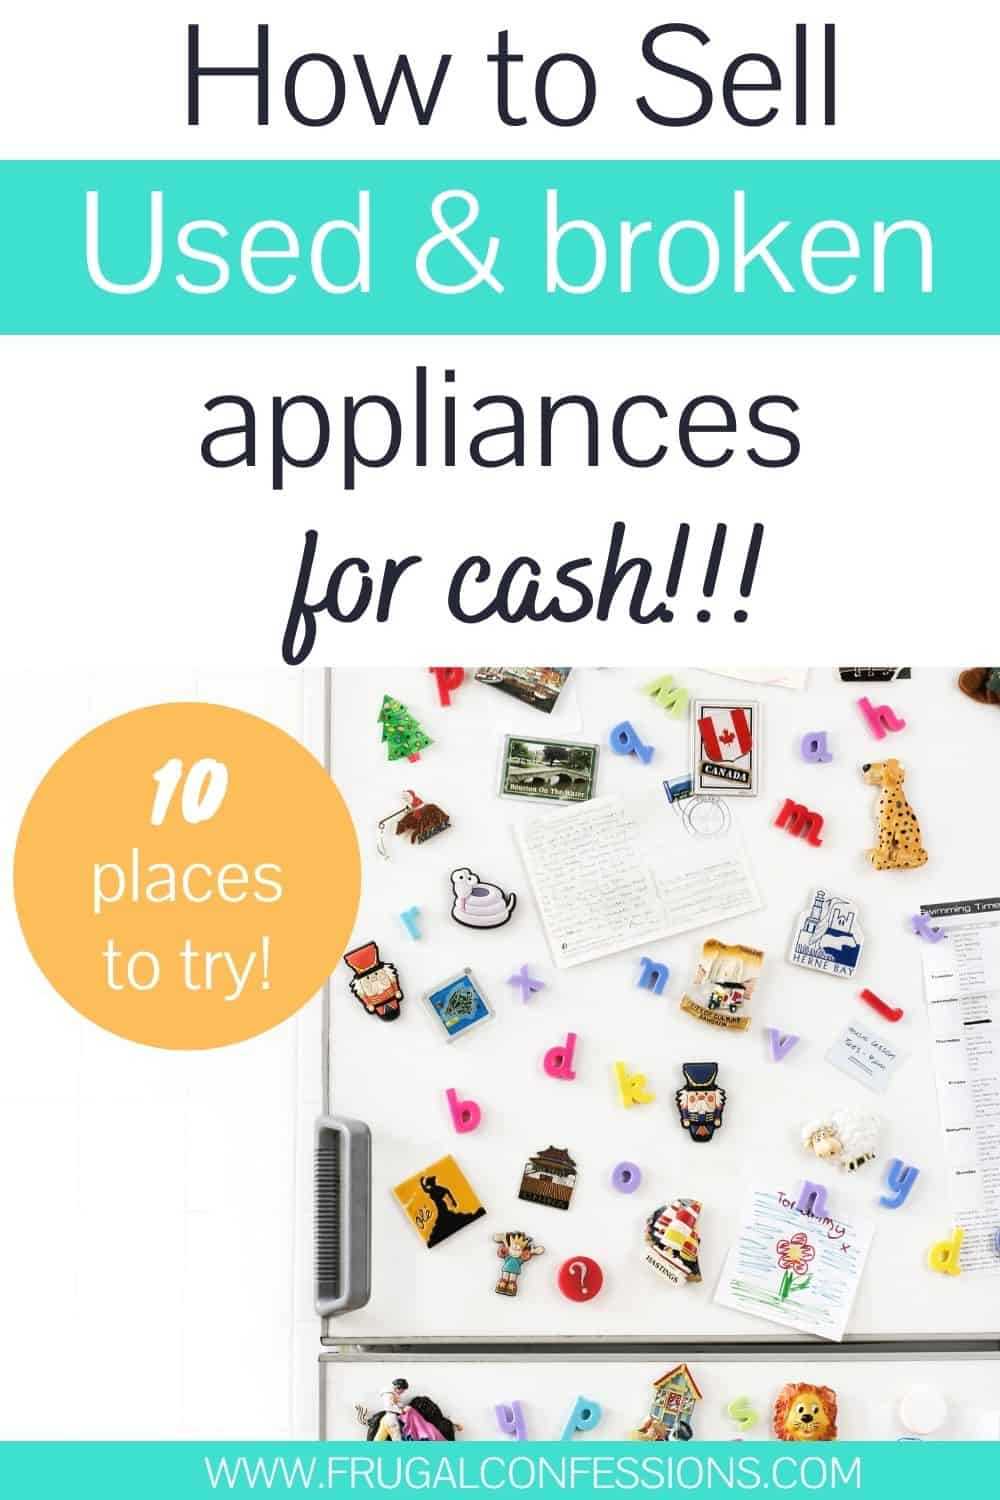 """old refrigerator covered in magnets, text overlay """"how to sell used and broken appliances for cash - 10 places"""""""